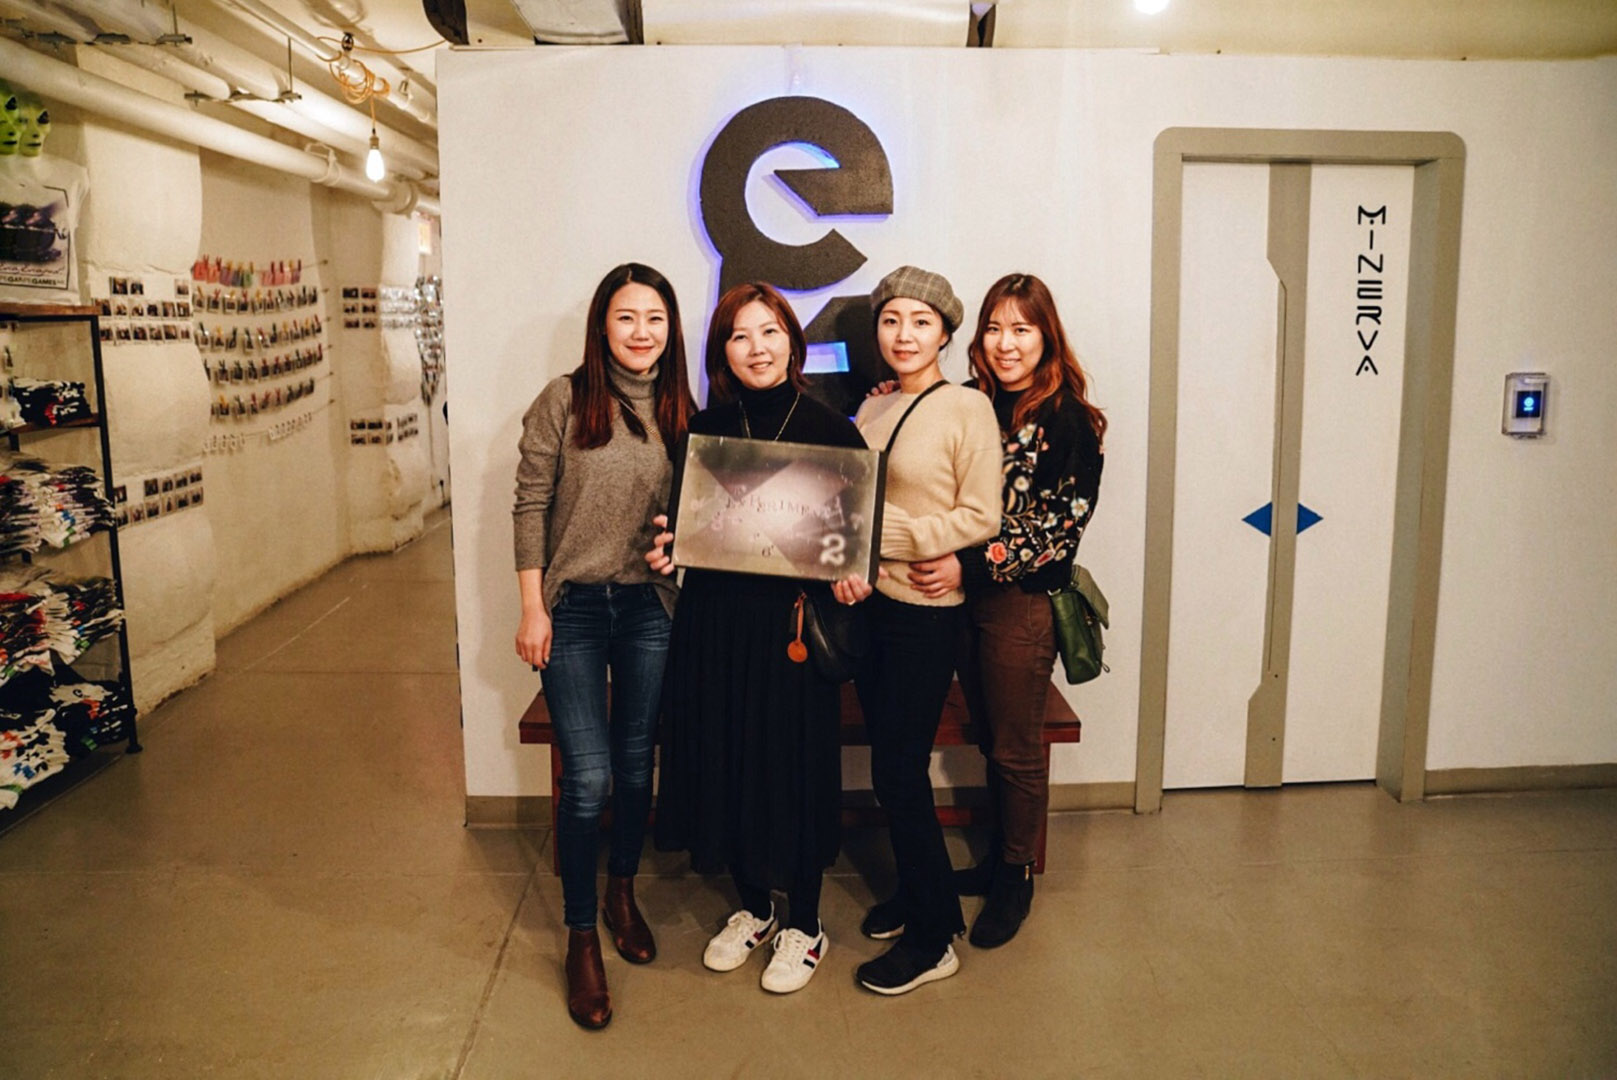 First time playing Escape the Room at  Escape Games NYC , and we escaped!